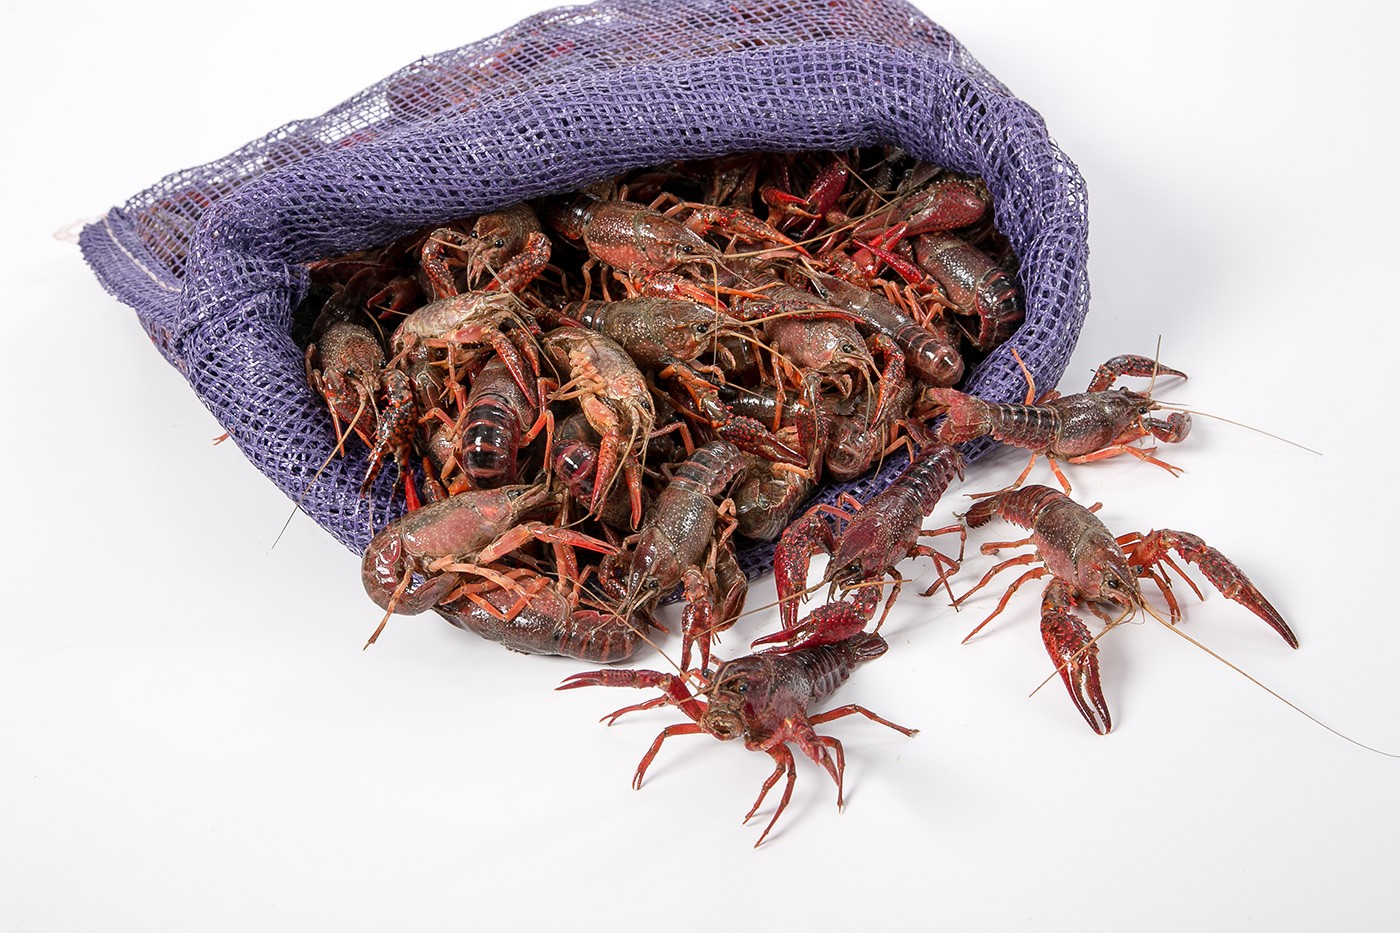 Wild Live Crayfish (Crawfish)